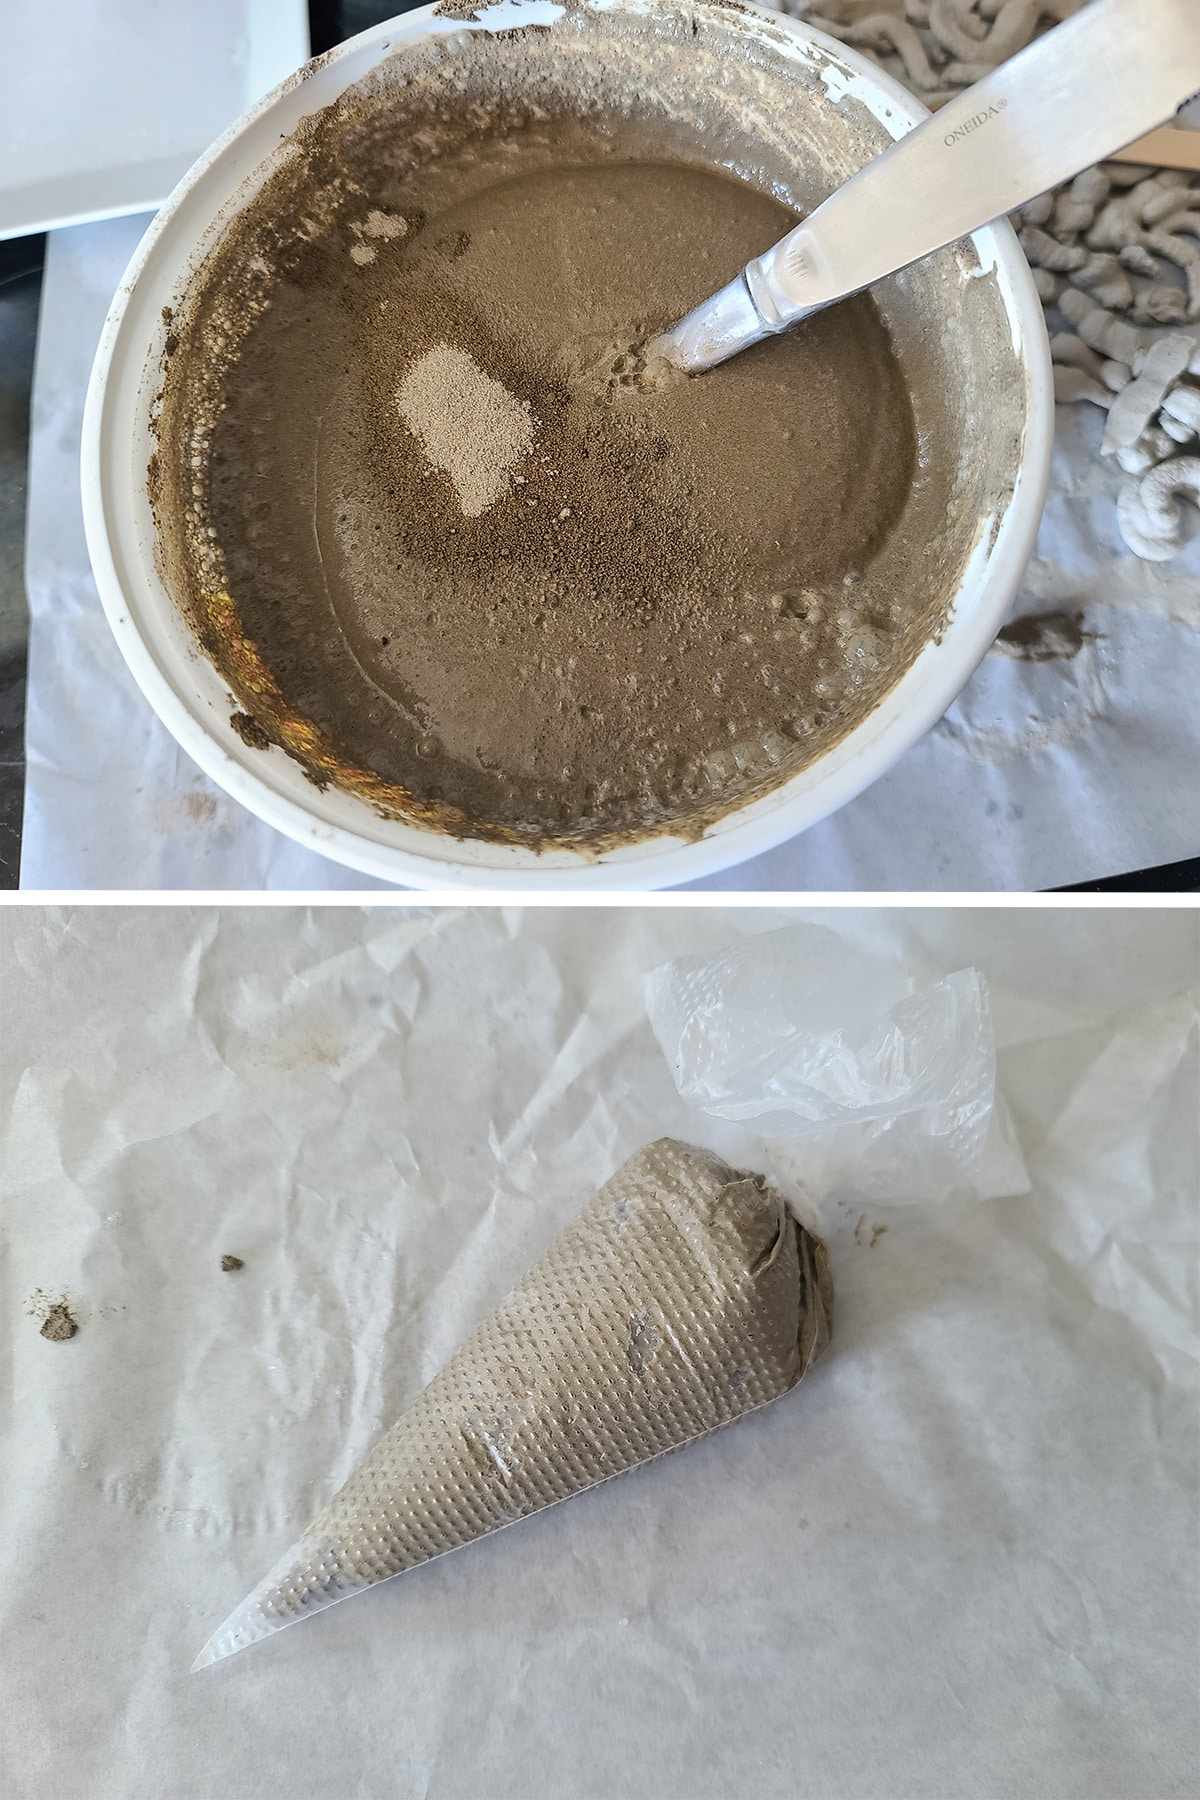 A two part image showing cement being mixed, and a piping bag full of cement.